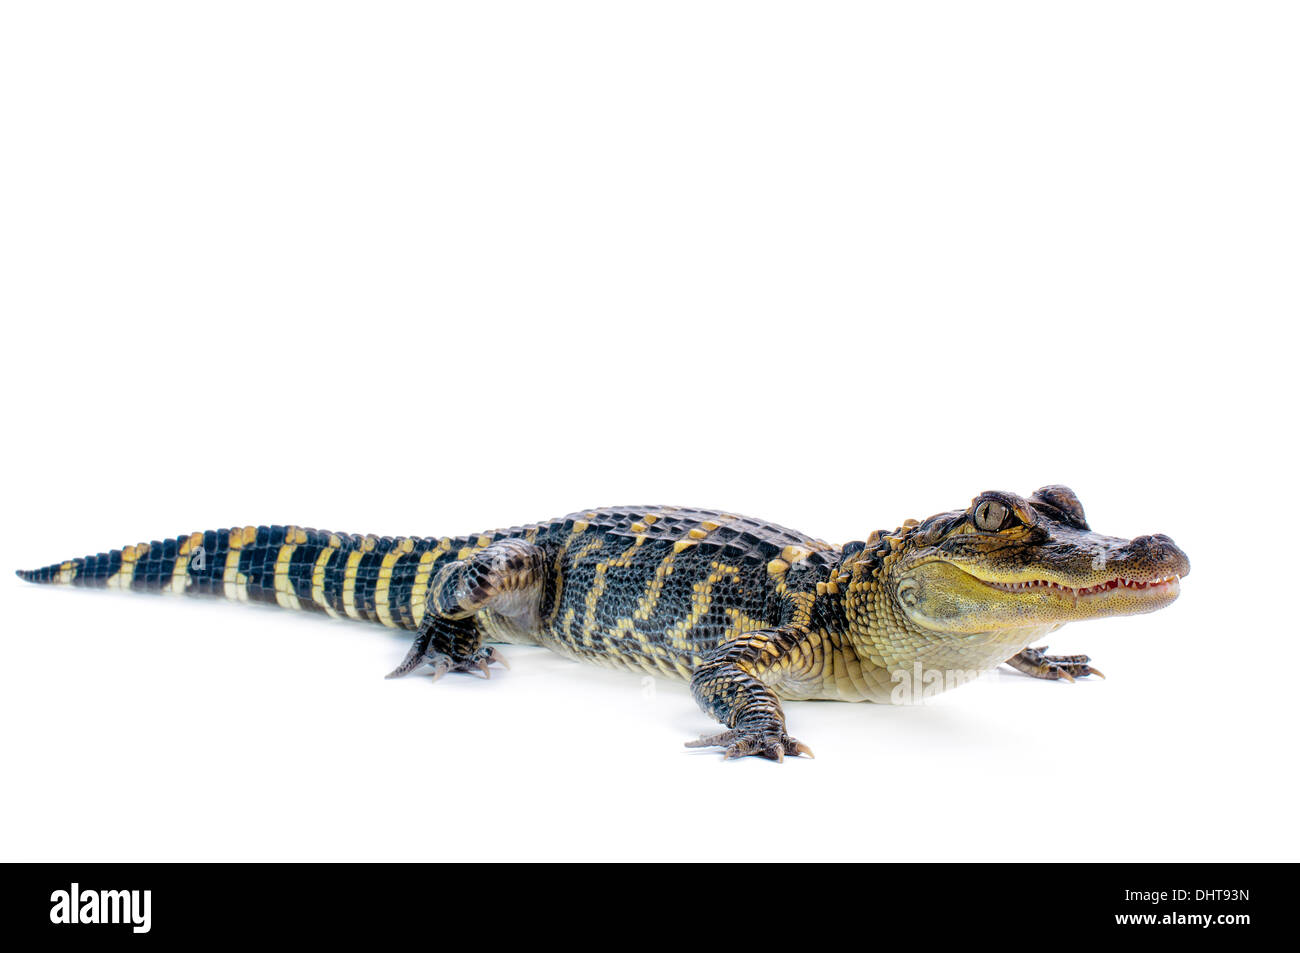 Young American Alligator on white background. Stock Photo